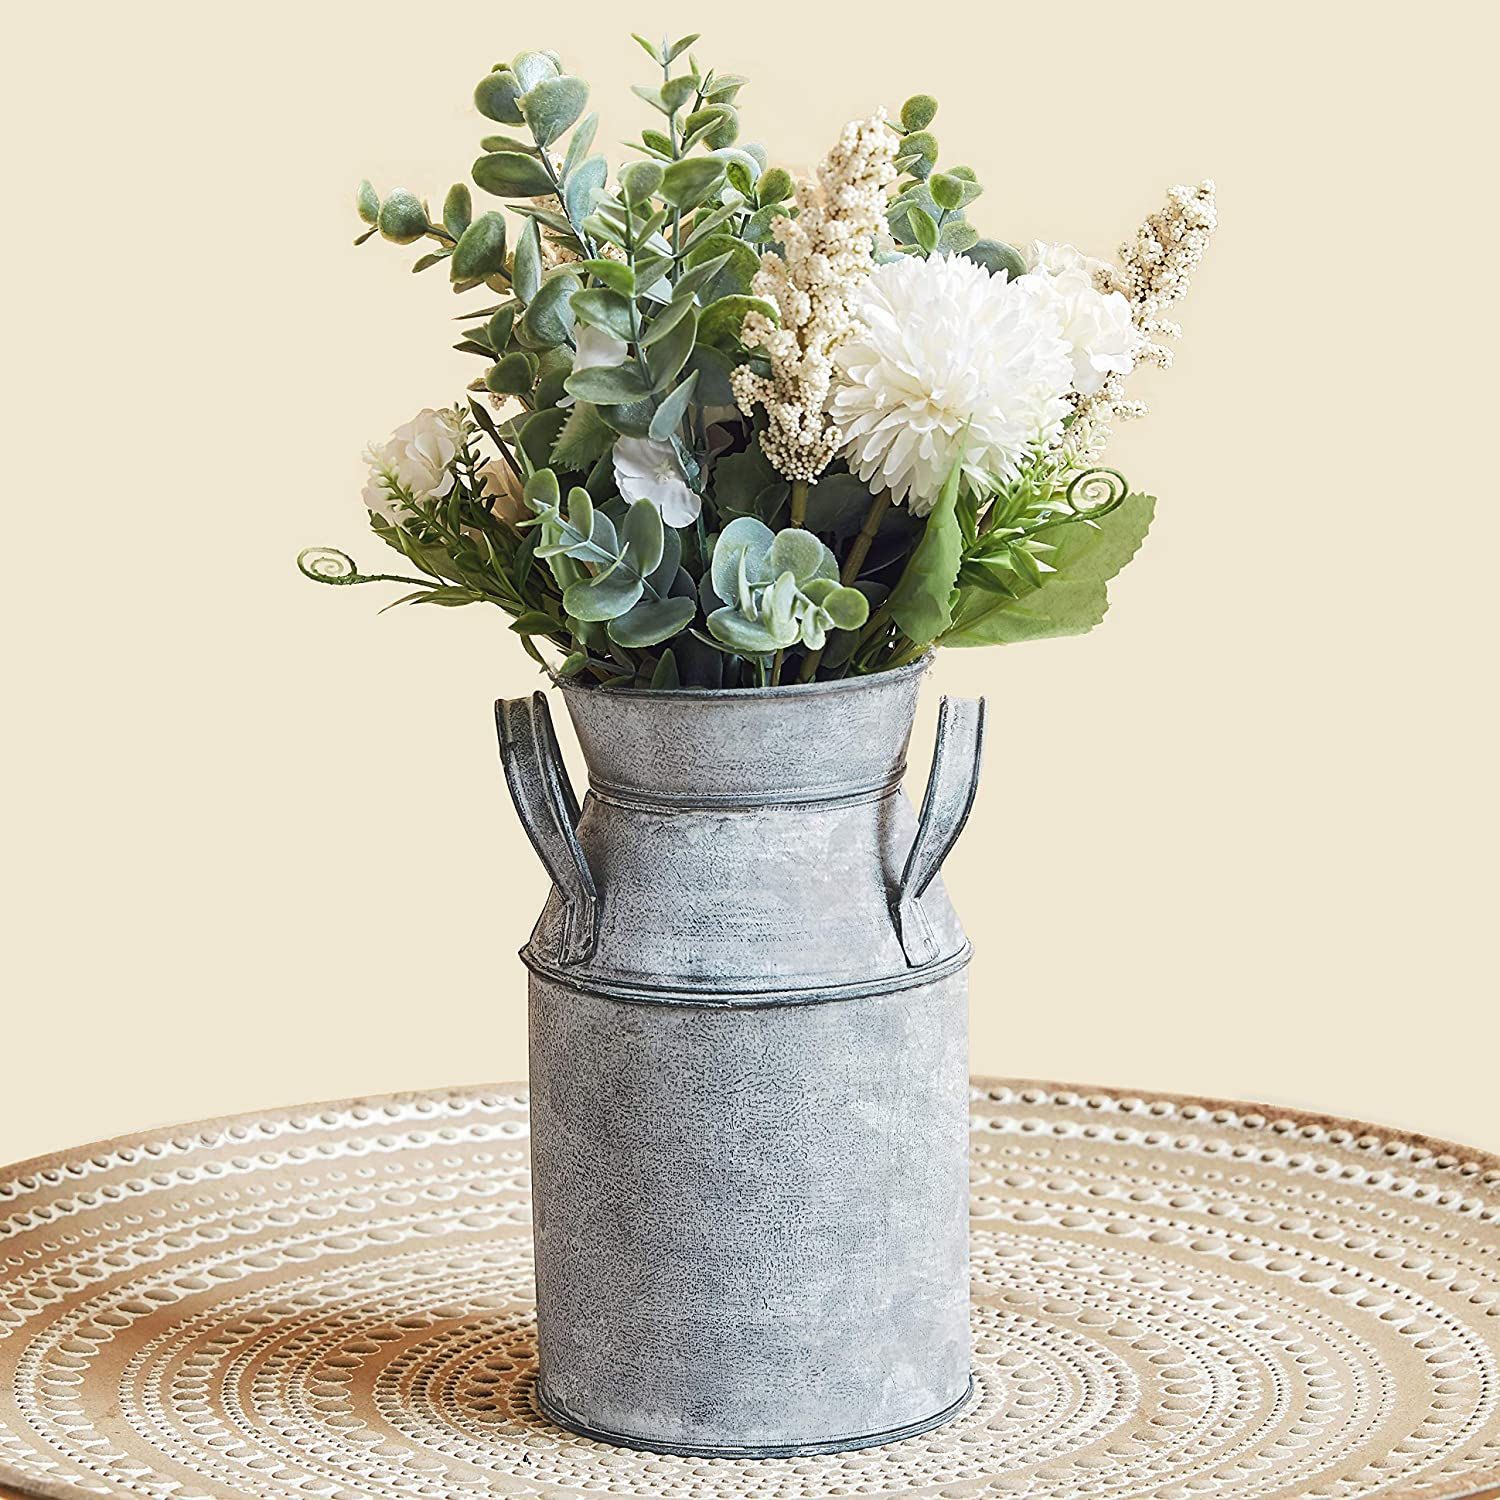 Amazon Com Vintage Antique Chic Vase Galvanized Metal Shabby Milk Can Country Rustic Farmhouse Table Decorative Flower Holder For Dining Living Room 7 4 H Kitchen Dining